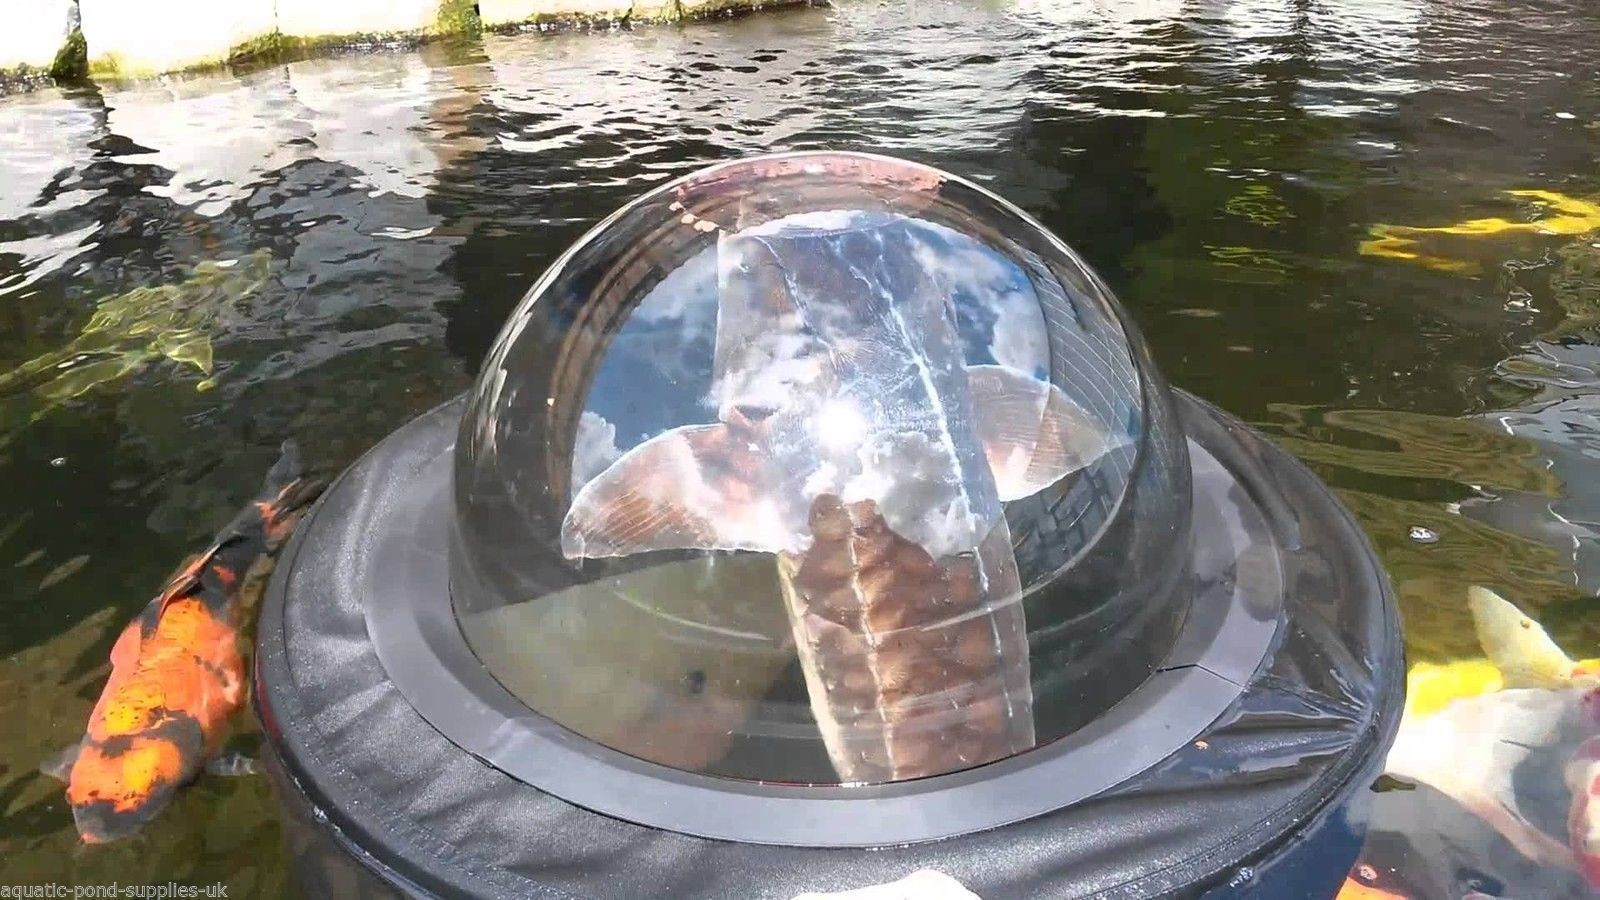 Velda floating fish sphere dome garden pond water koi for Large outdoor fish ponds